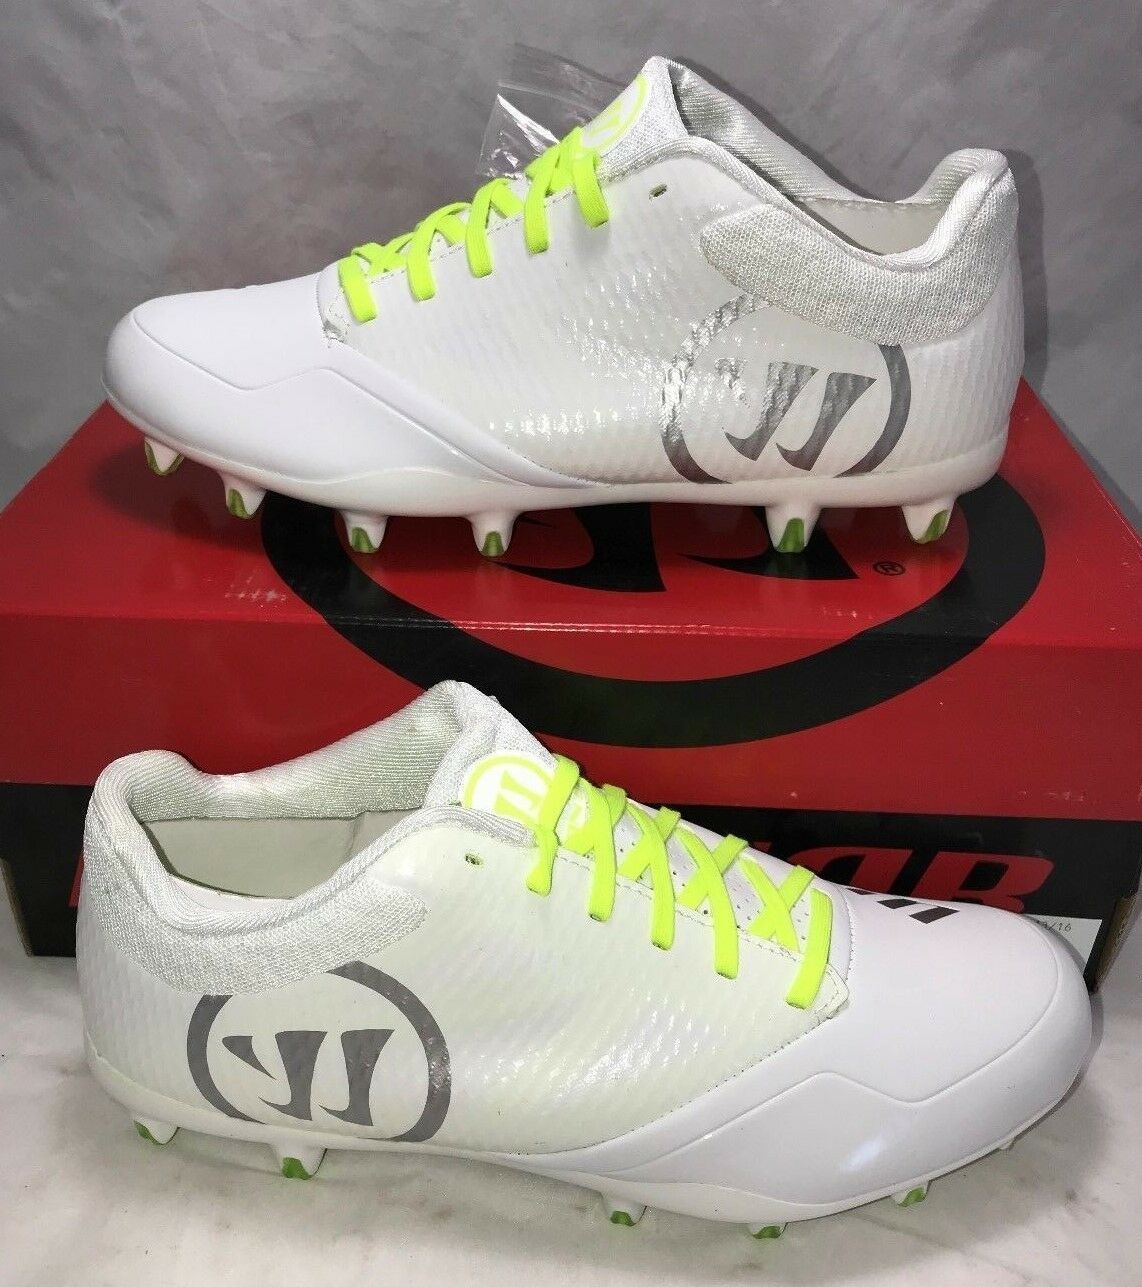 Warrior Mens Size 10 Burn 9.0 Lacrosse Lax Cleats White Volt Low New